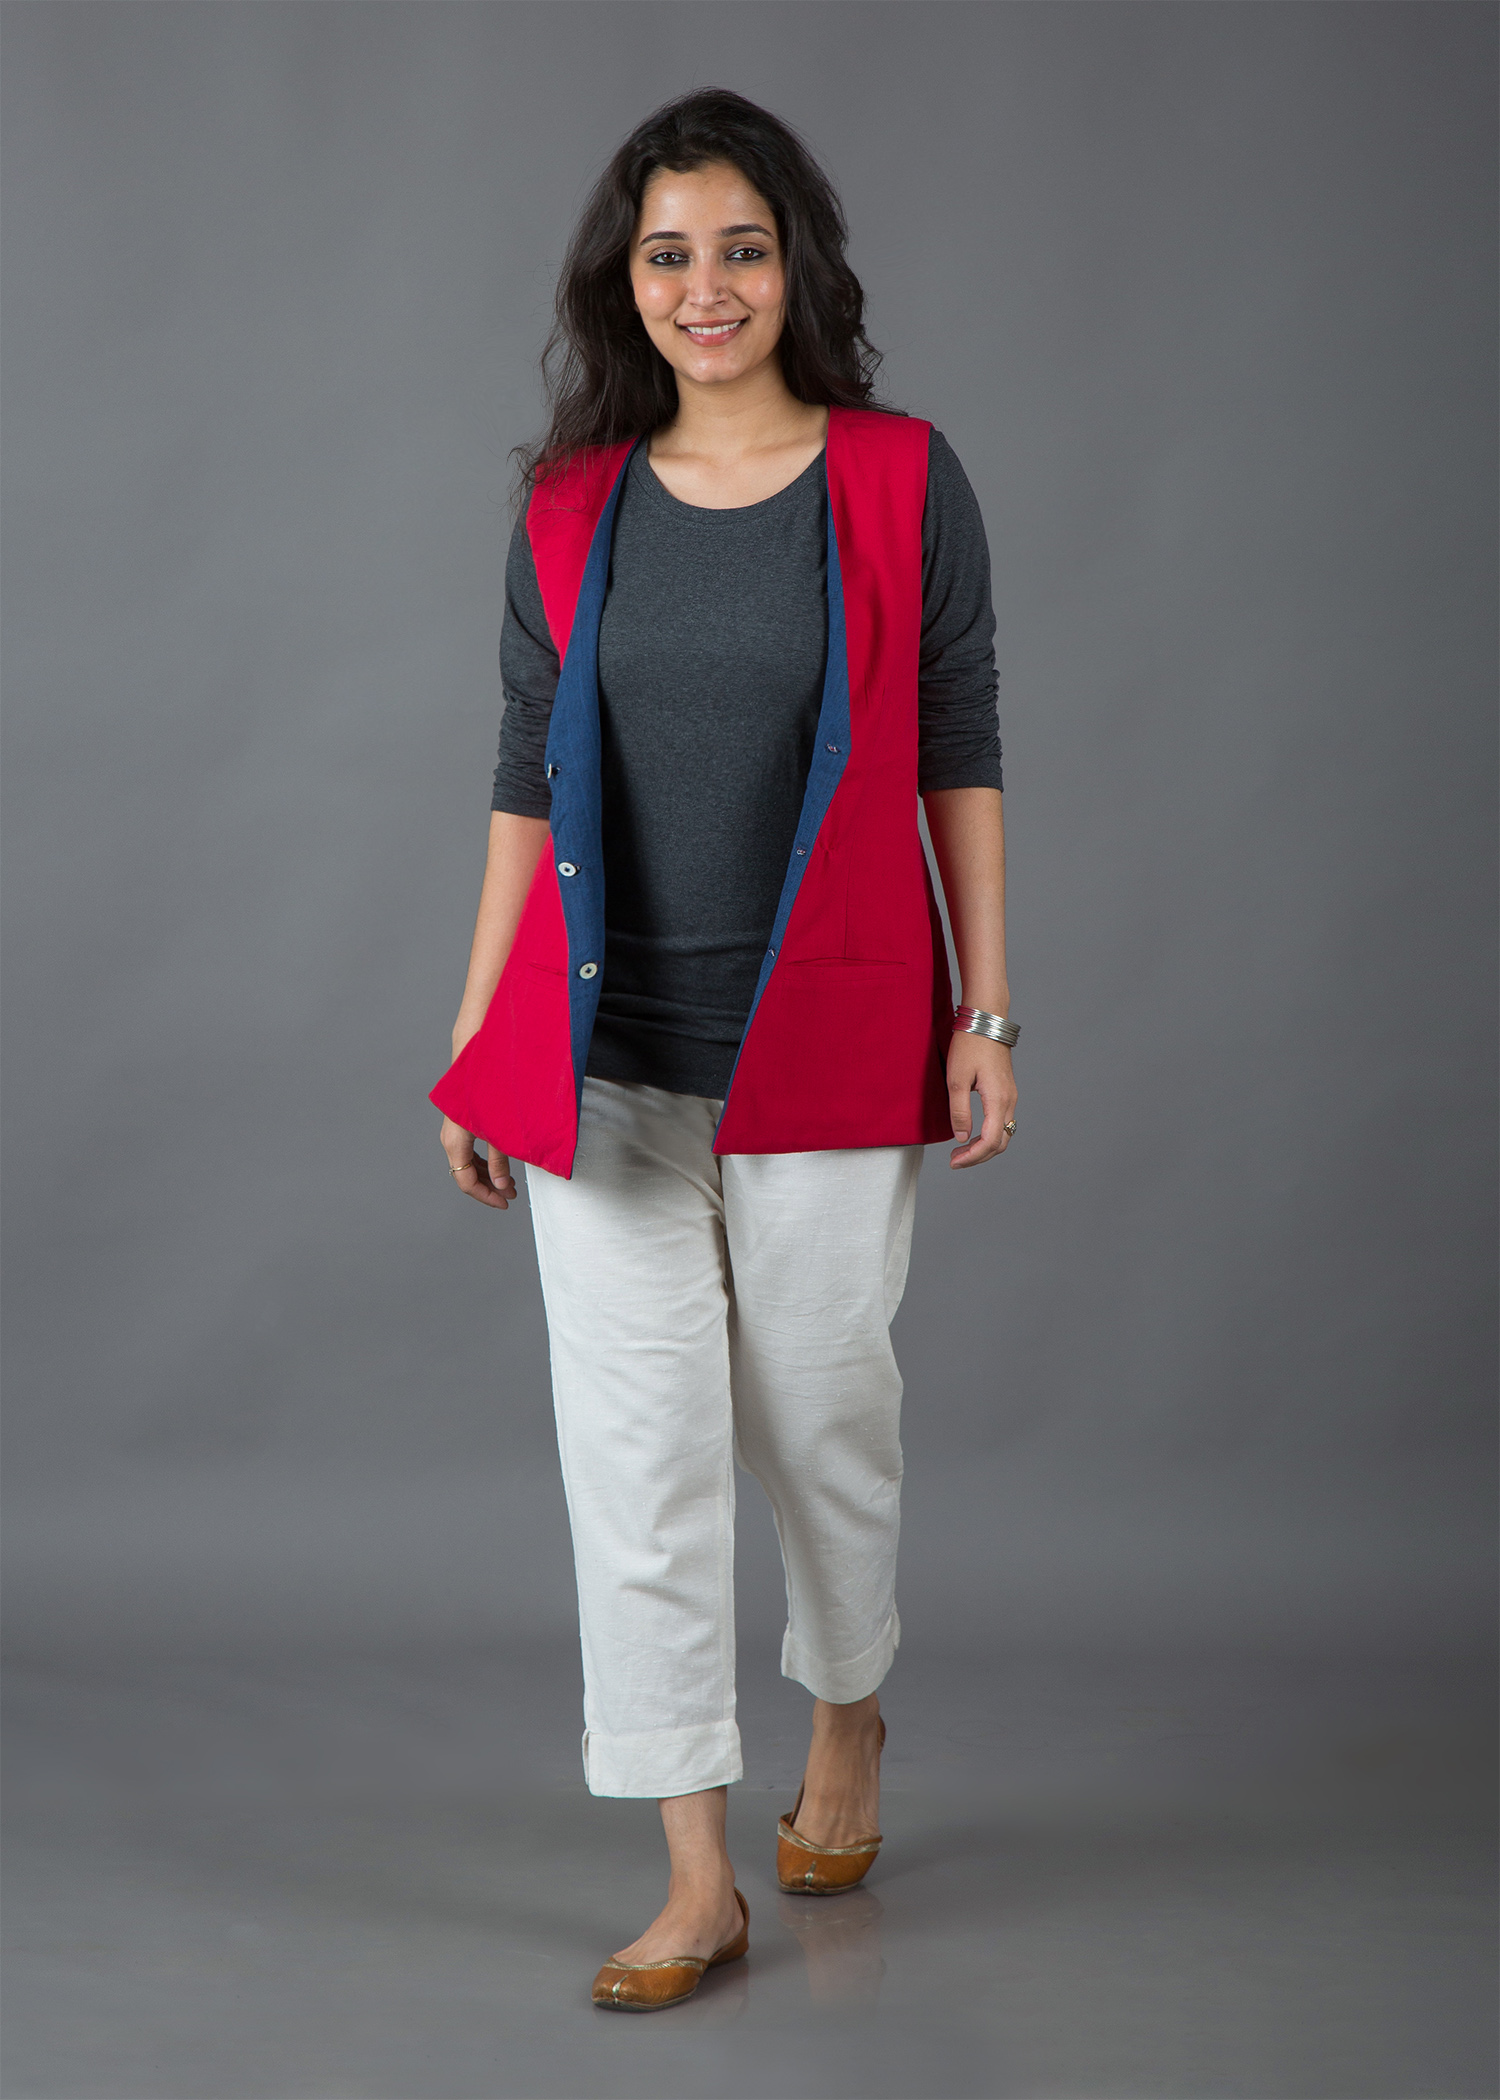 Candy Red & Lapis Blue Handwoven Cotton Reversible Jacket